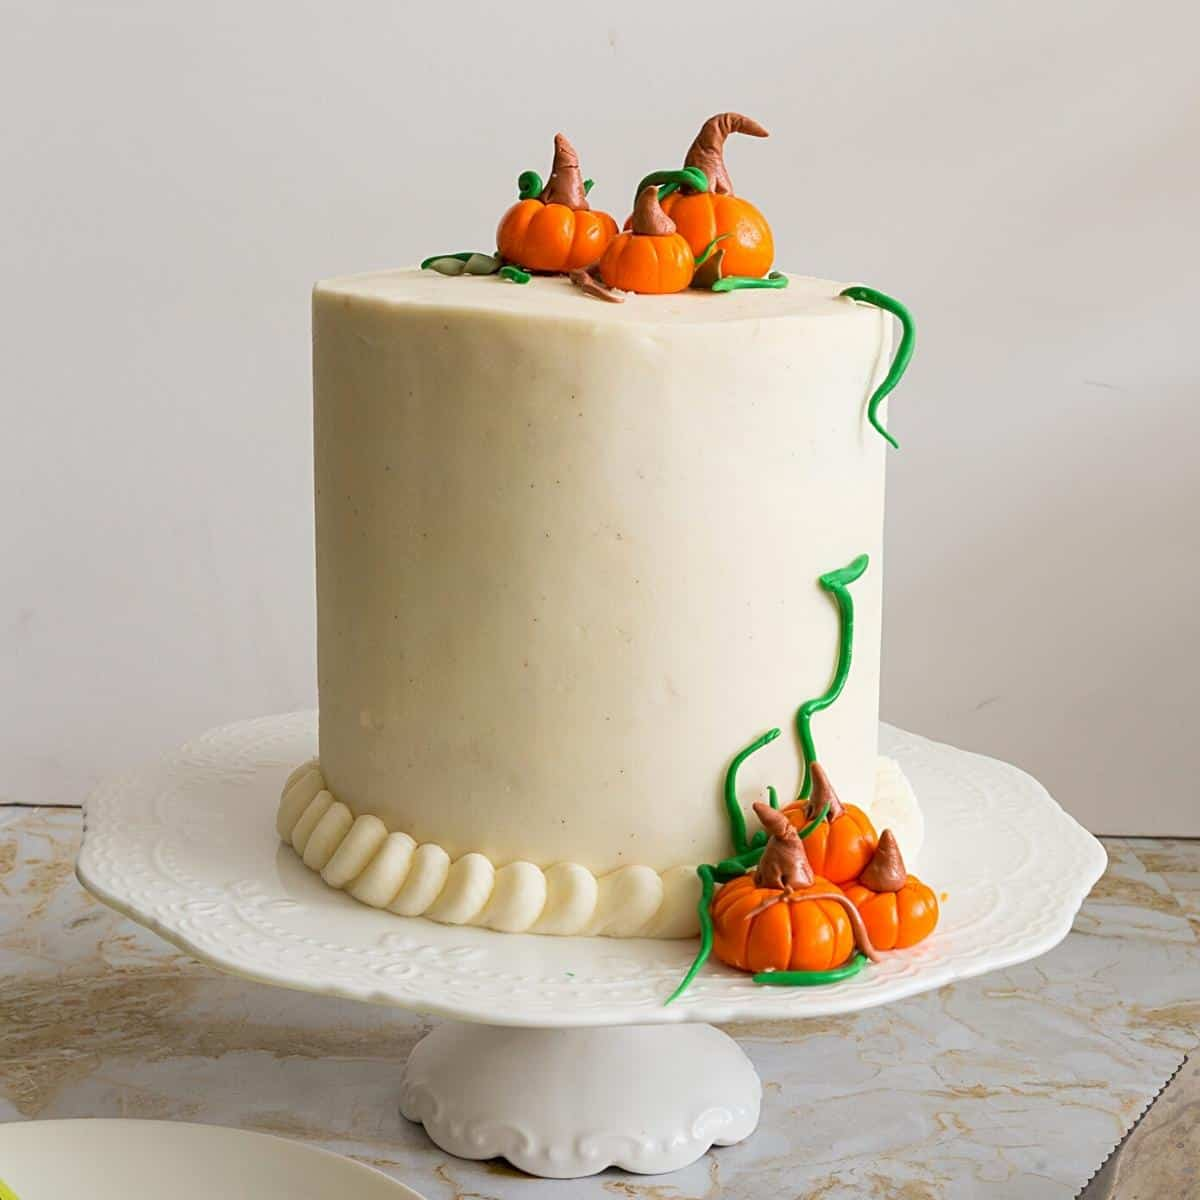 A cream cheese frosted pumpkin cake.